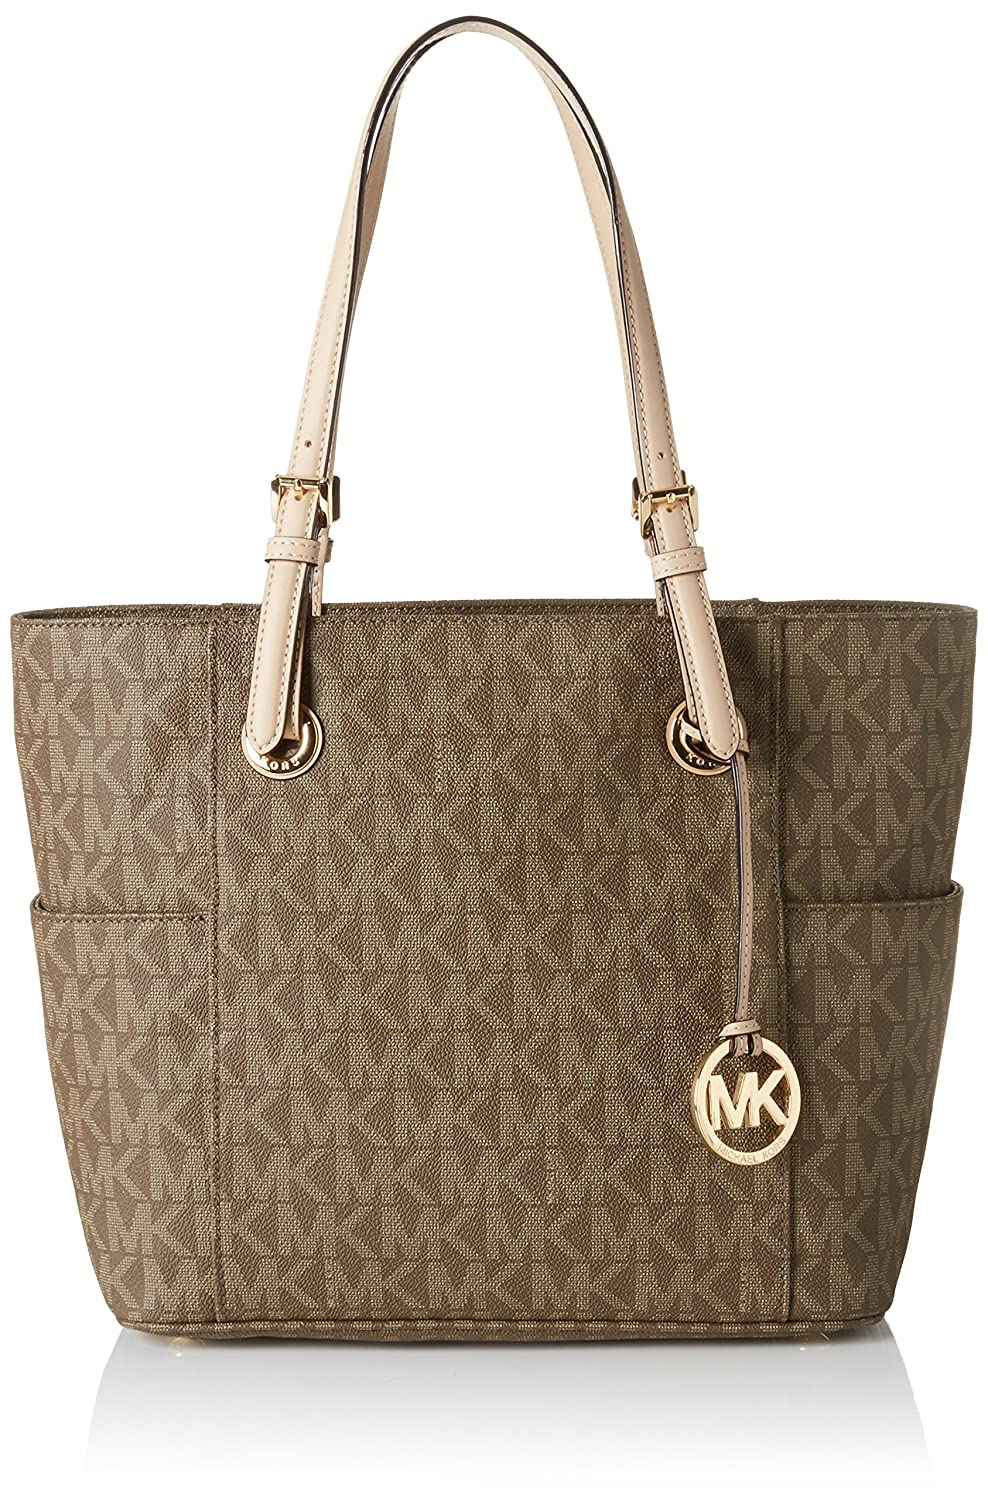 michael kors purses on sale qvc amazon michael kors handbags sale